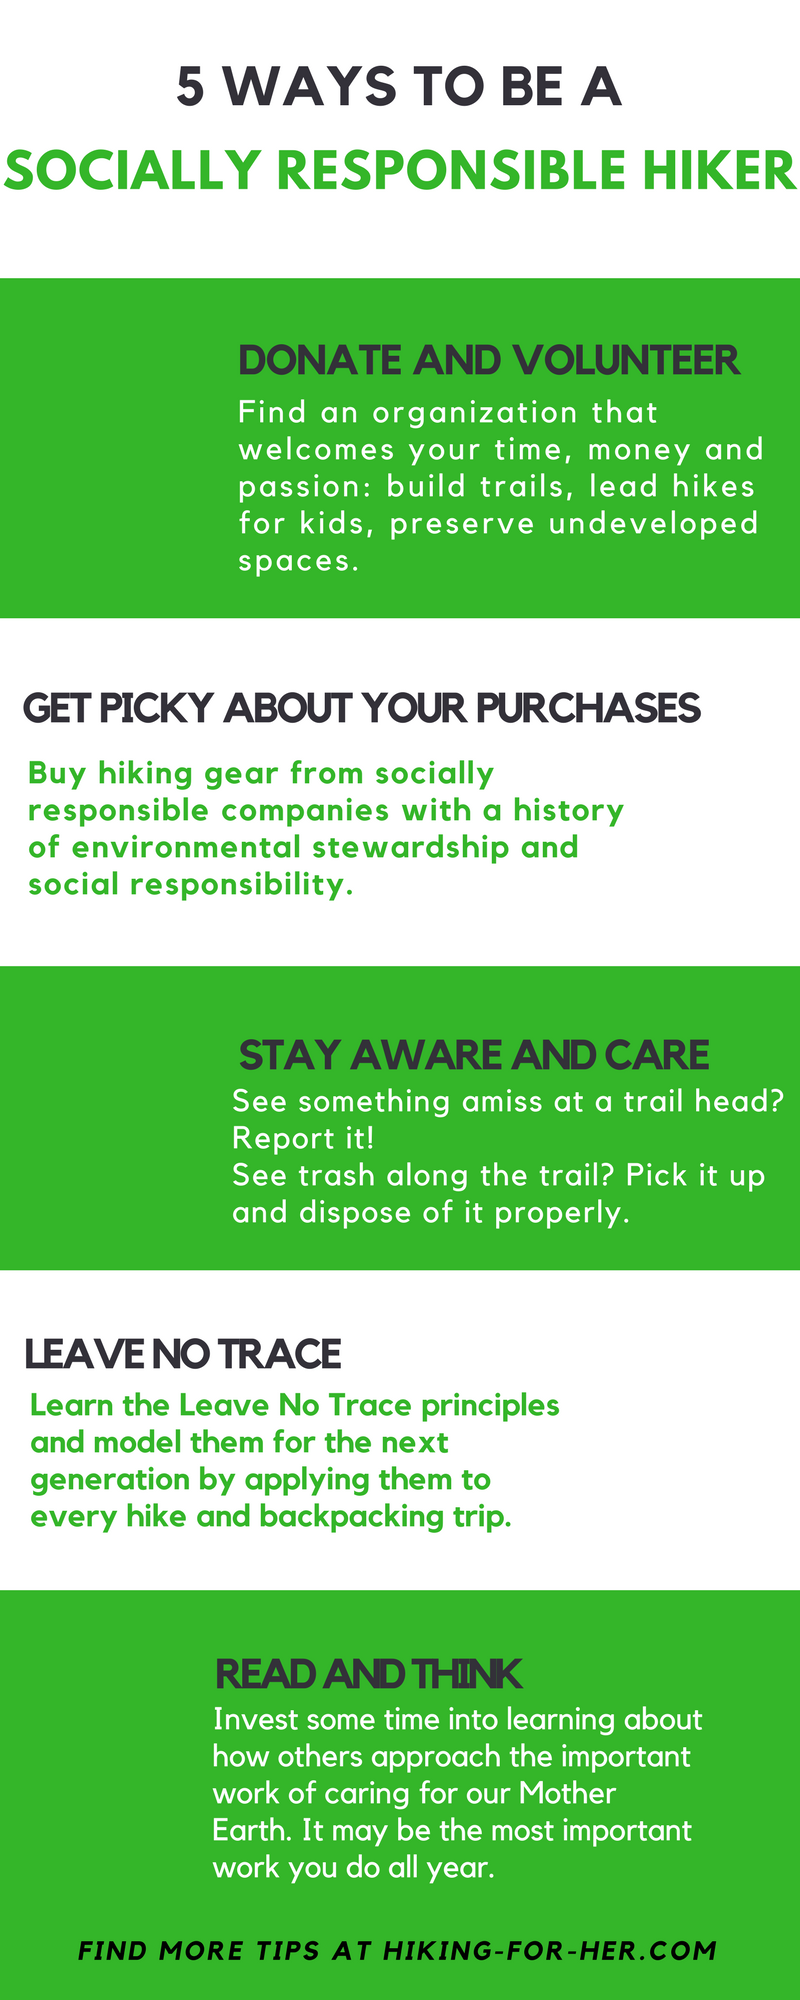 Being a socially responsible hiker means taking good care of your environment and being proactive about your approach to hiking, including using Leave No Trace principles.